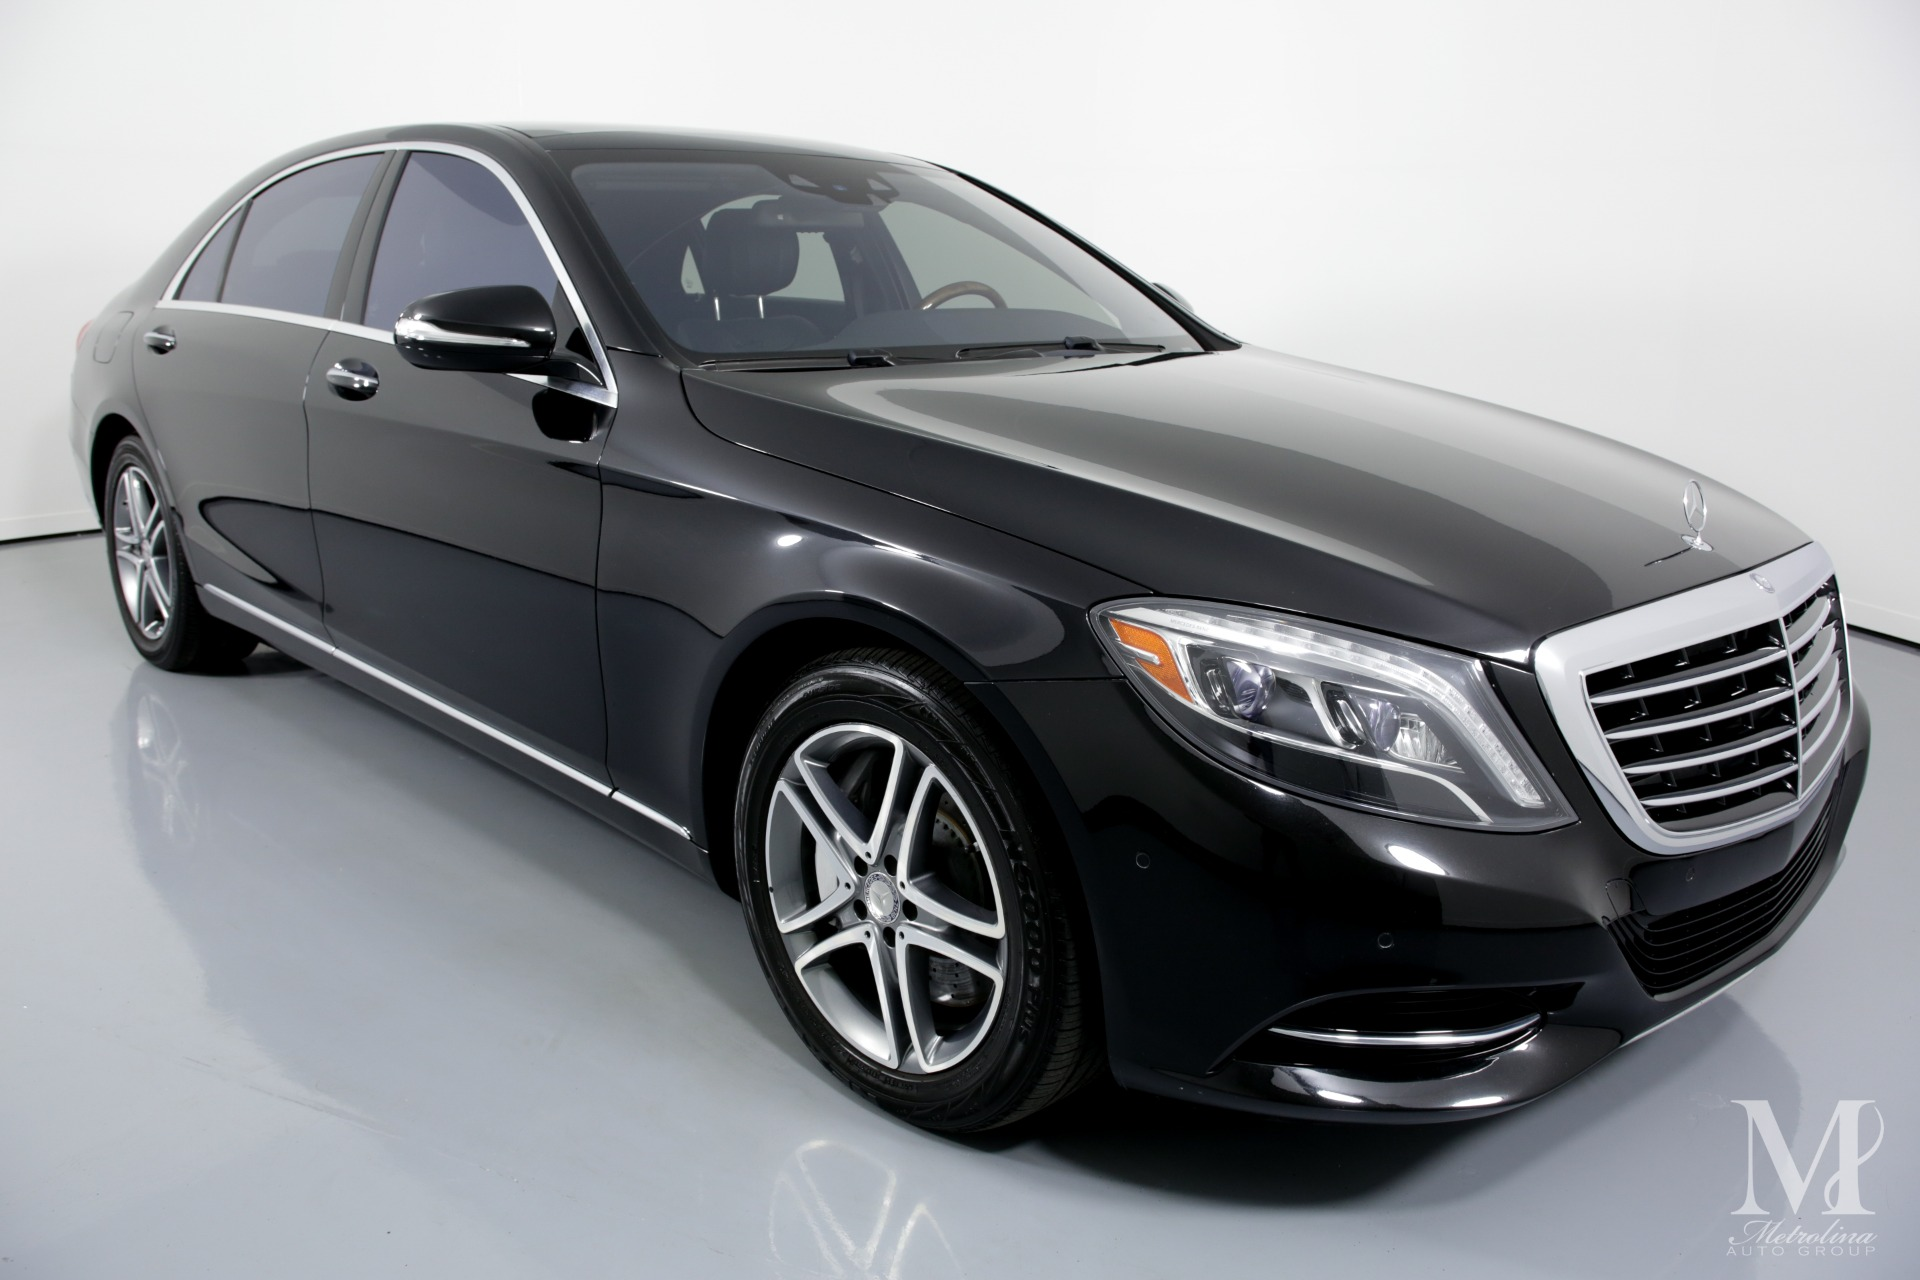 Used 2016 Mercedes-Benz S-Class S 550 4dr Sedan for sale $51,456 at Metrolina Auto Group in Charlotte NC 28217 - 2